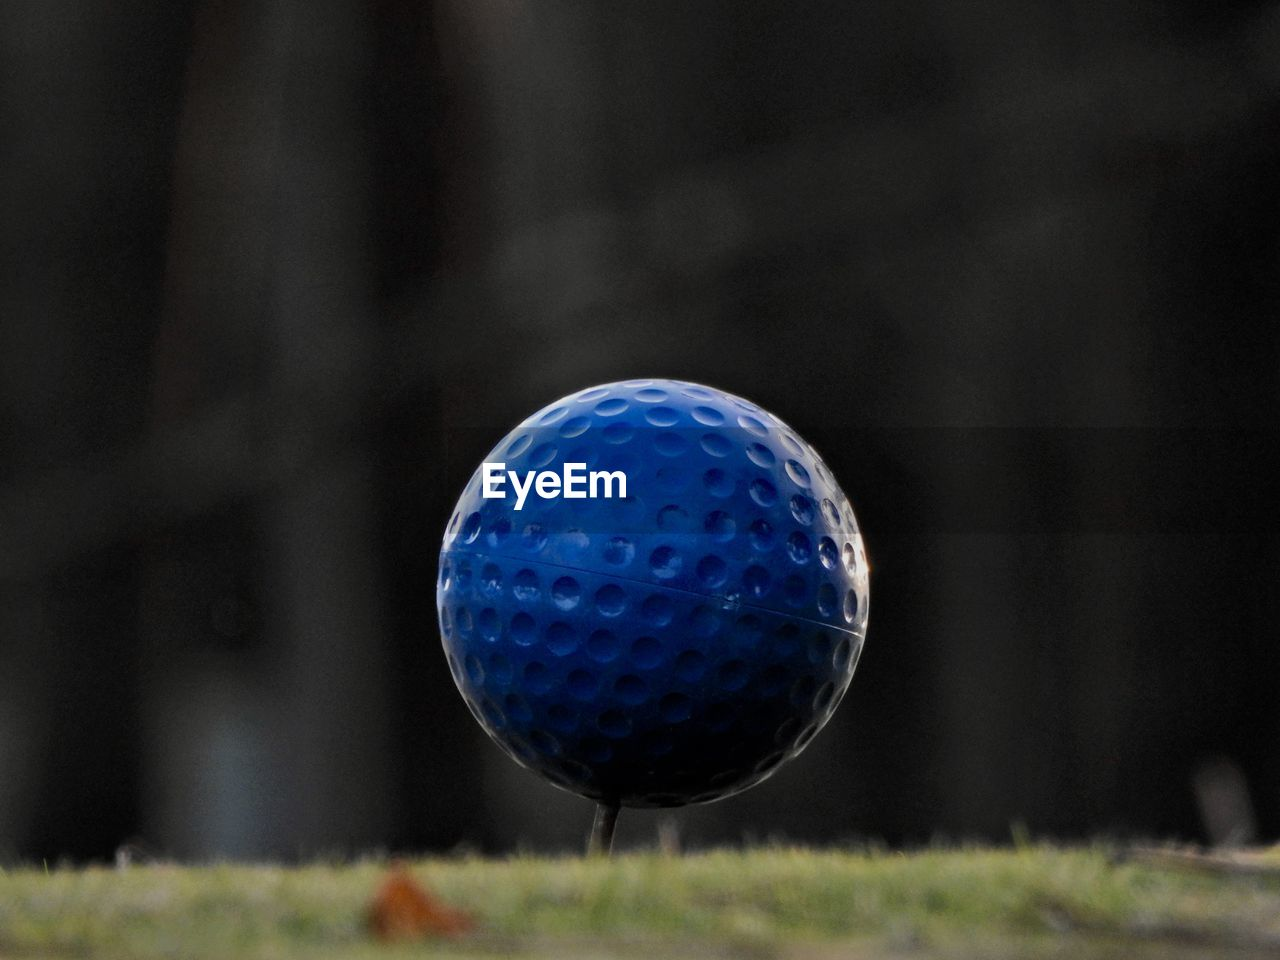 golf, golf ball, grass, activity, ball, close-up, leisure activity, focus on foreground, sport, no people, day, golf course, nature, outdoors, sphere, green color, plant, still life, selective focus, taking a shot - sport